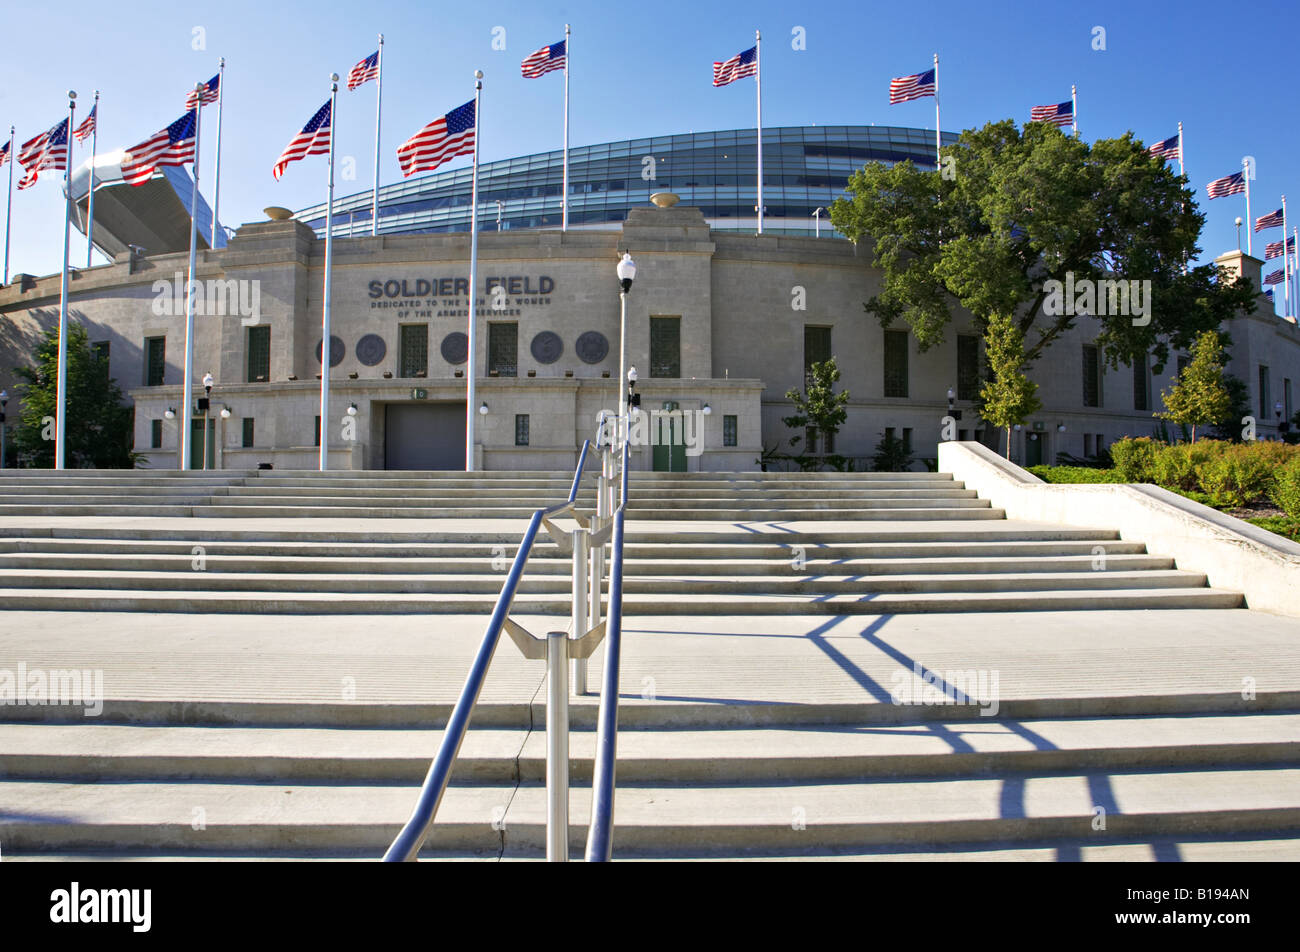 BUILDINGS Chicago Illinois Soldier Field redesigned football field home to Chicago Bears stairs with handrail leading - Stock Image